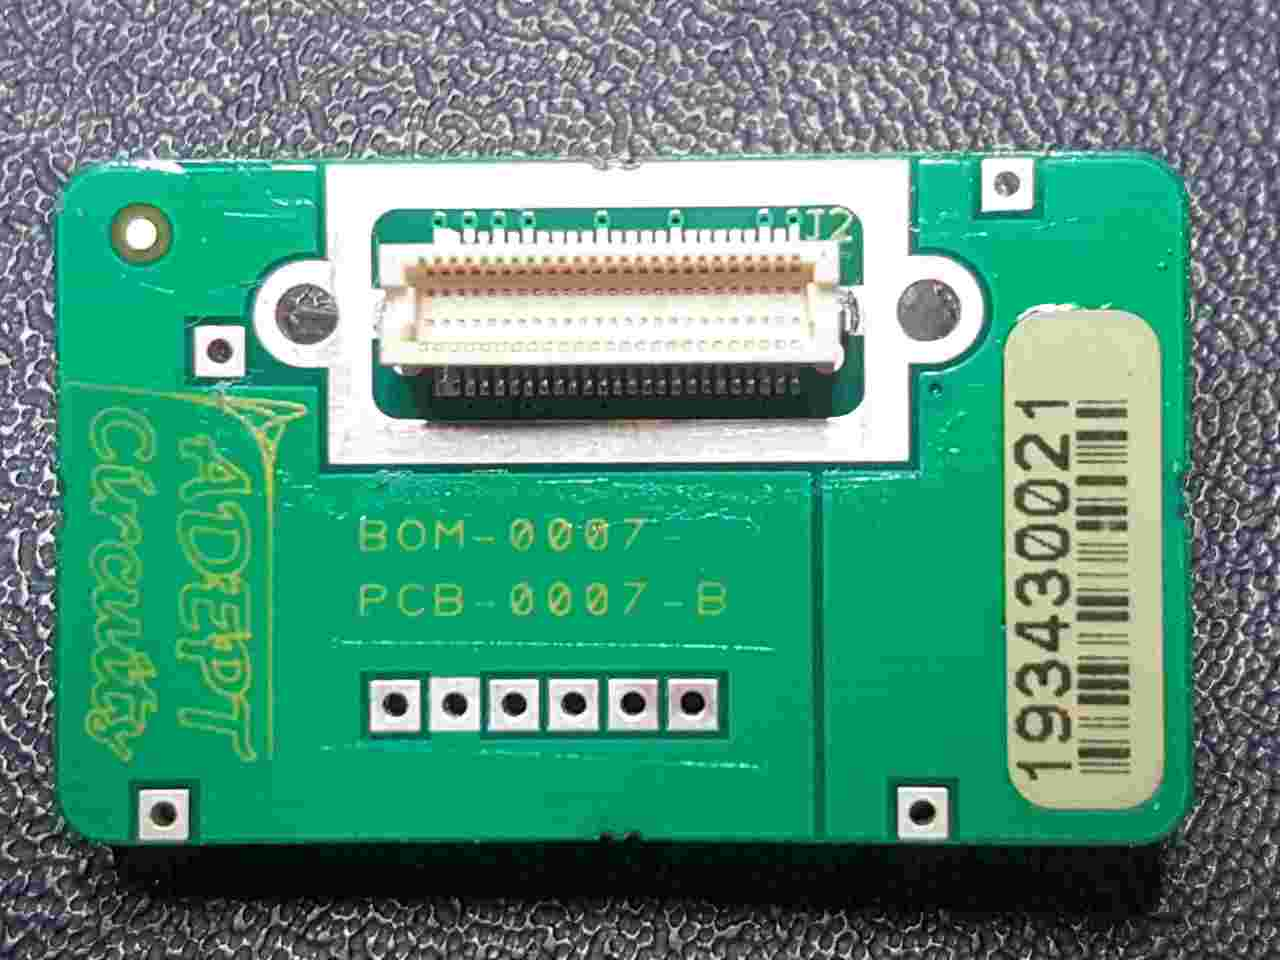 Infrared Camera Adaptor printed circuit board with  single high density 50 pin connector  type Hirose DF12-50DS-0.5V(86)